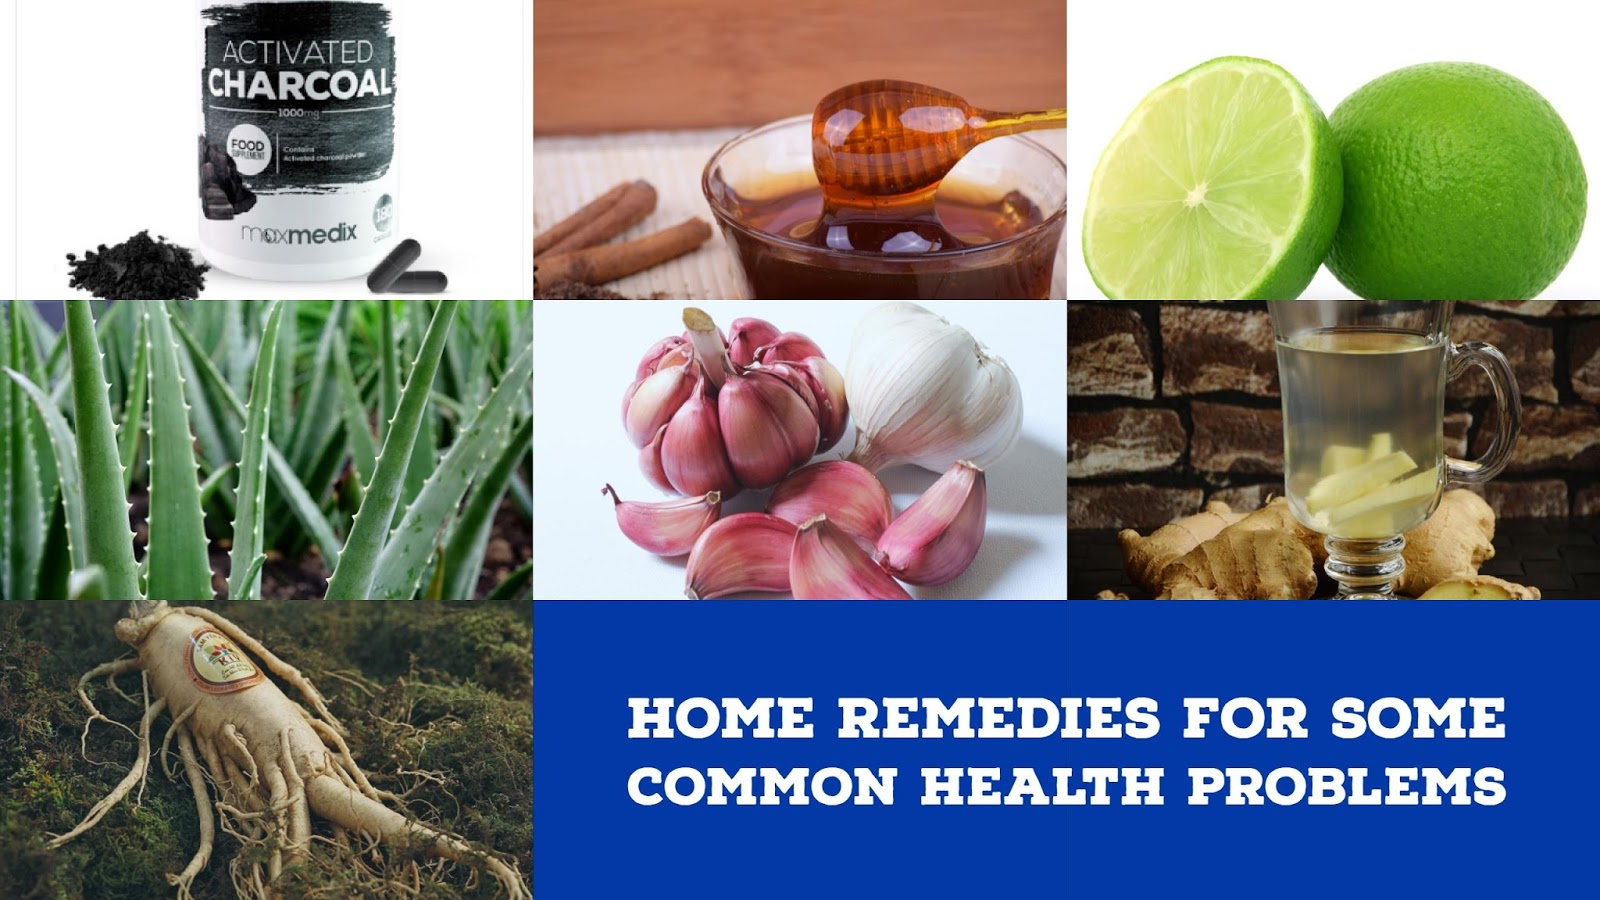 home remedies for some common health problems health pleromanaway back before modern medicine was introduced in africa, china and other parts of the world, herbs and other naturally occurring plants were used for